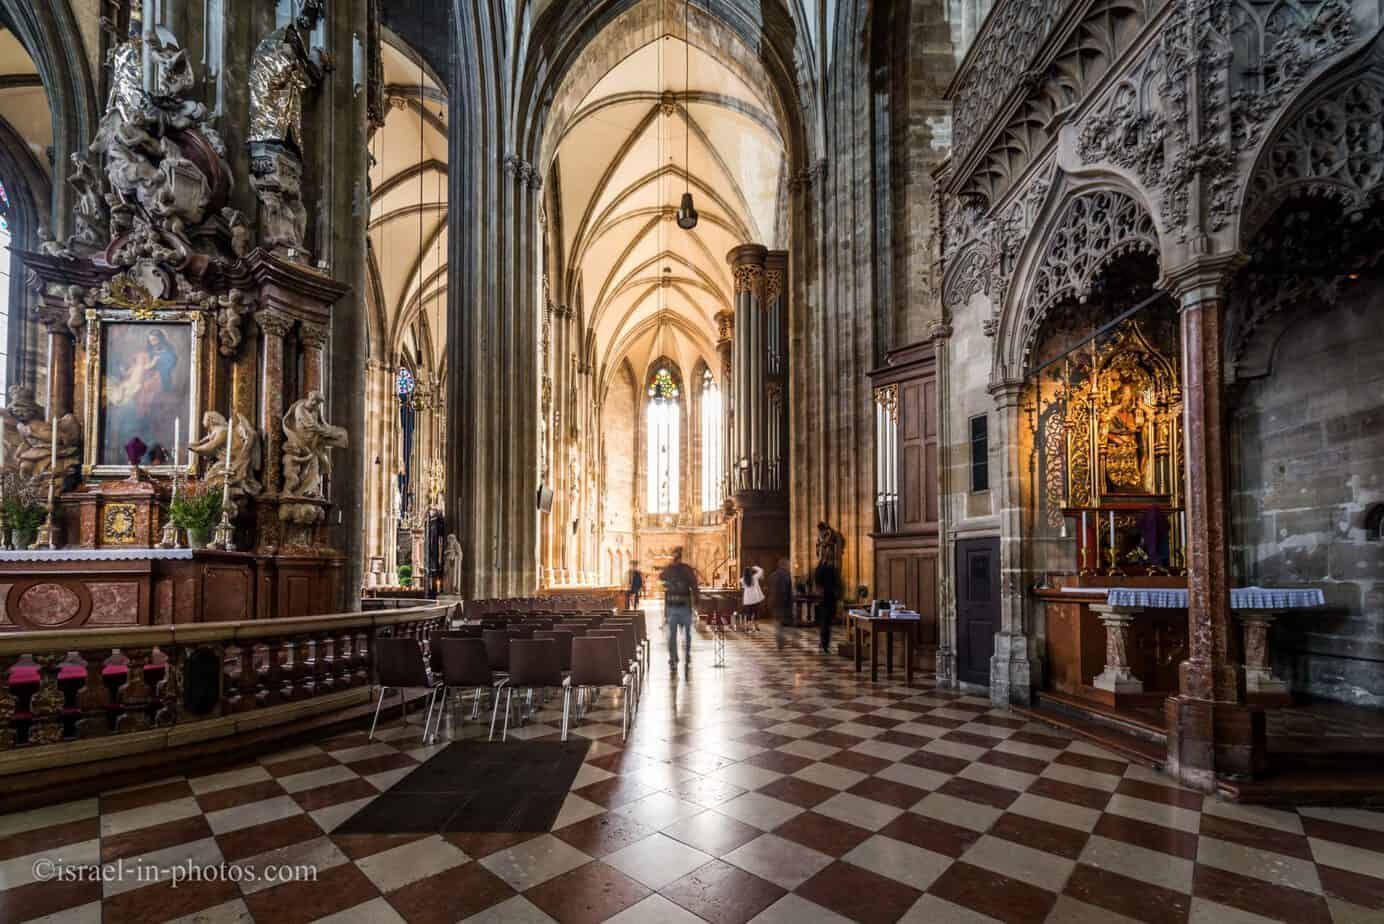 St. Stephen's Cathedral in Vienna, Capital de Austria